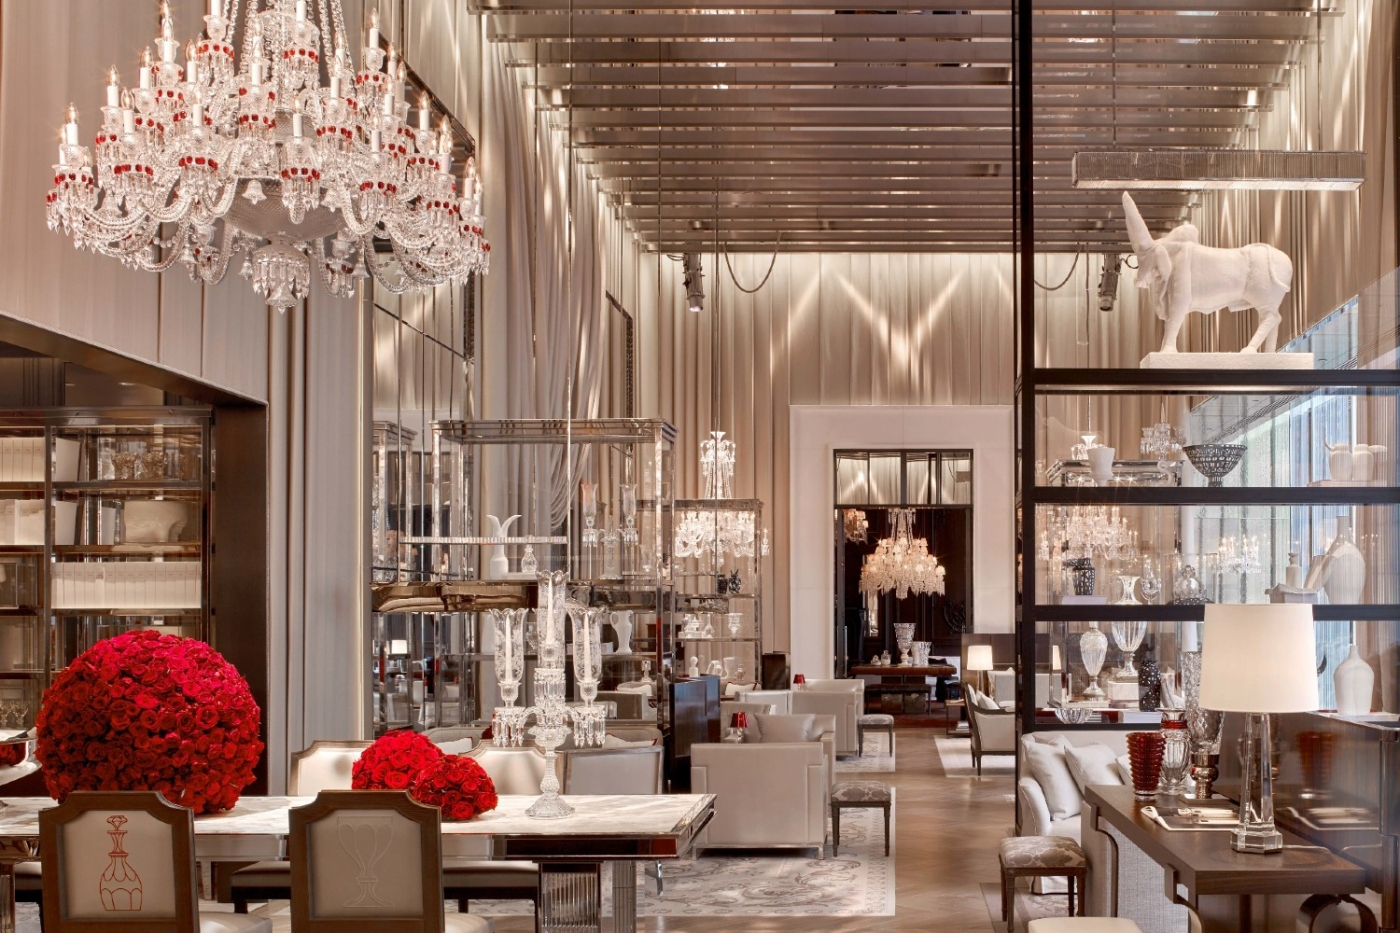 luxury living Baccarat Hotel & Residences – The Epitome of Luxury Living in New York baccarat 1400x933